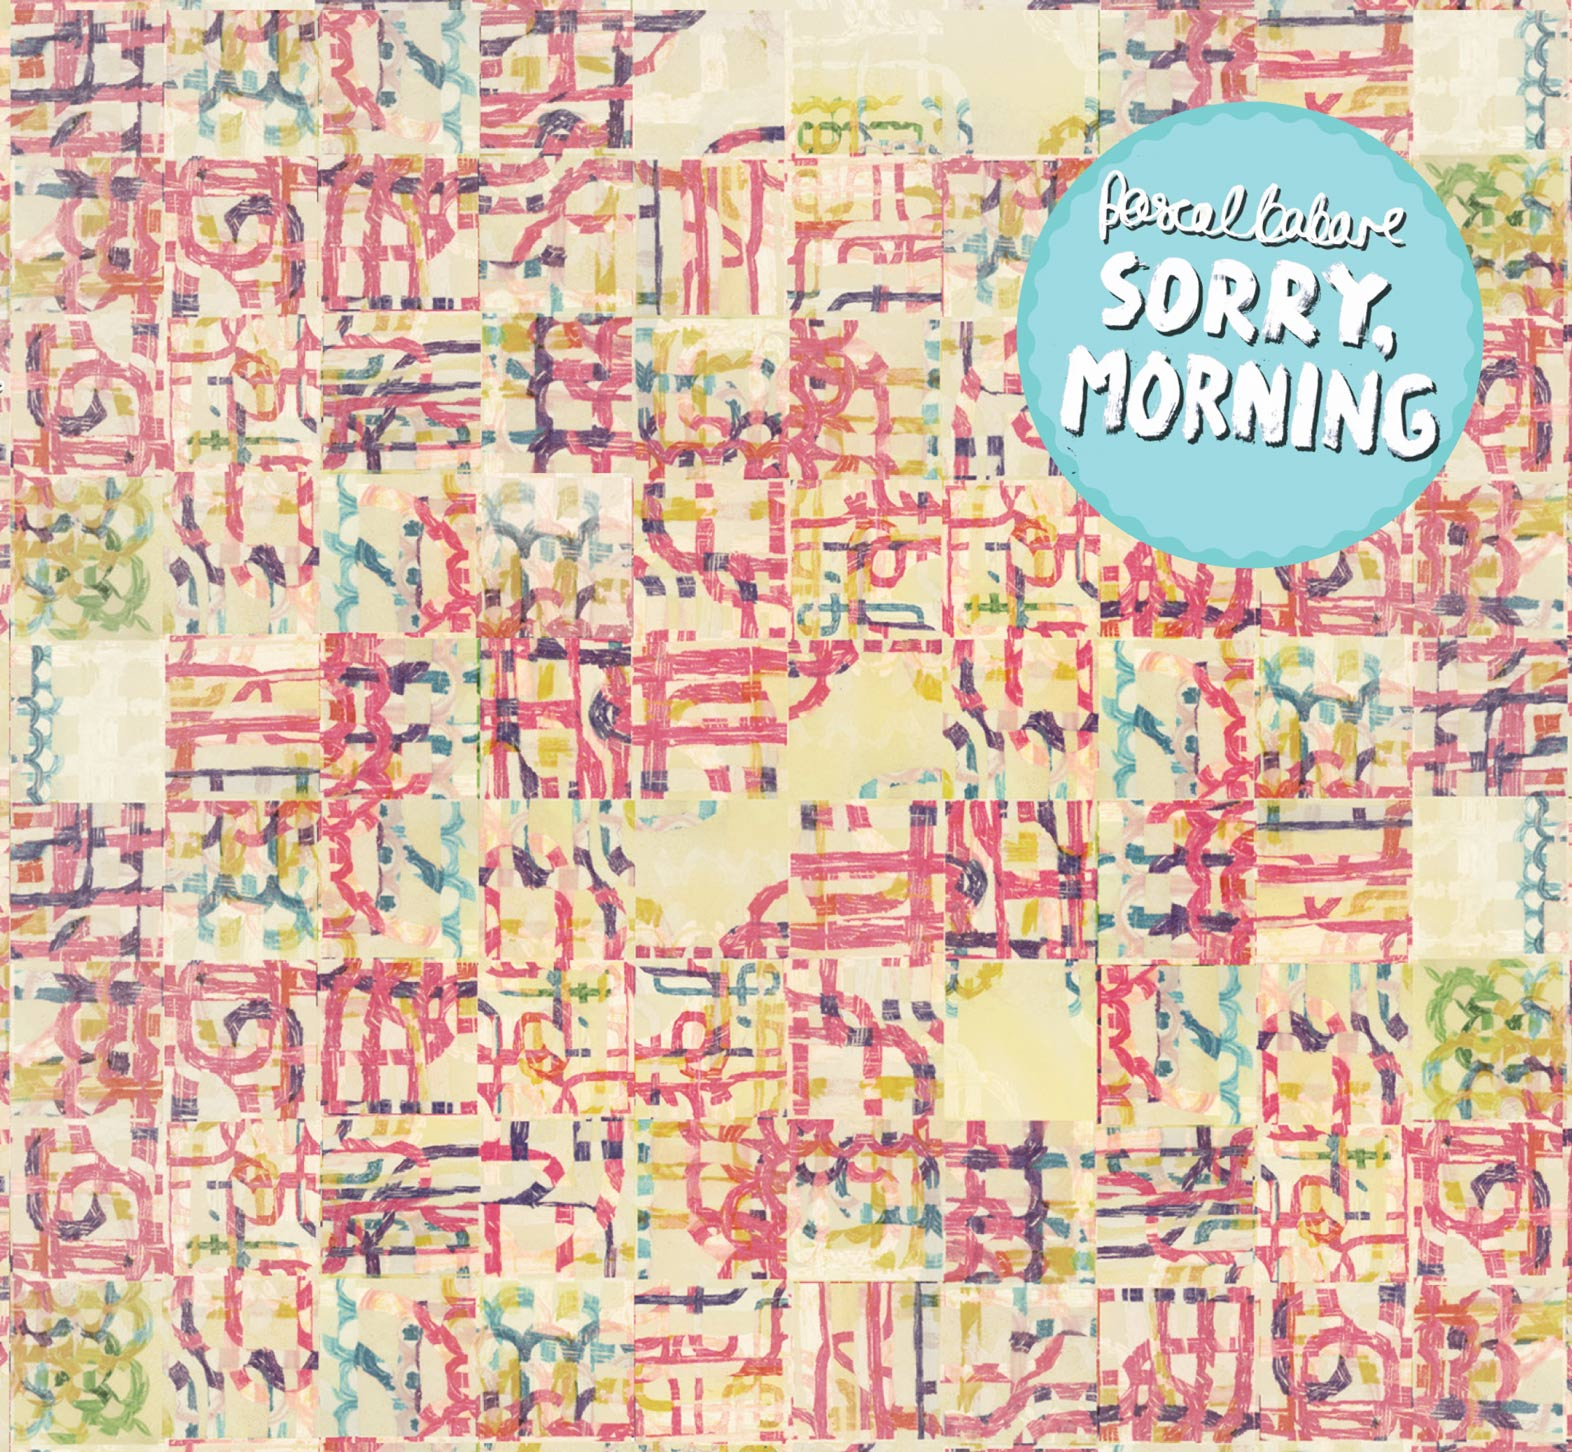 "My second solo LP ""Sorry, Morning"", quietly released in 2013, was recorded between Germany and London.  It was recored a little better, and lyrically it's a bit more cold. But the songs are mostly about me. In fact they're all about me, even the ones where I say it's about someone else. Except the breakup song. That's definitely not about me. But it also kind of is. Or is it? I guess you'll never know.  -Pascal Babare, 2016  You can get the digital version  here . I also have some lovely cardboard gatefold CDs, which come with a big fold-out poster of the artwork and lyrics inside. Get in touch if you'd like to buy one."